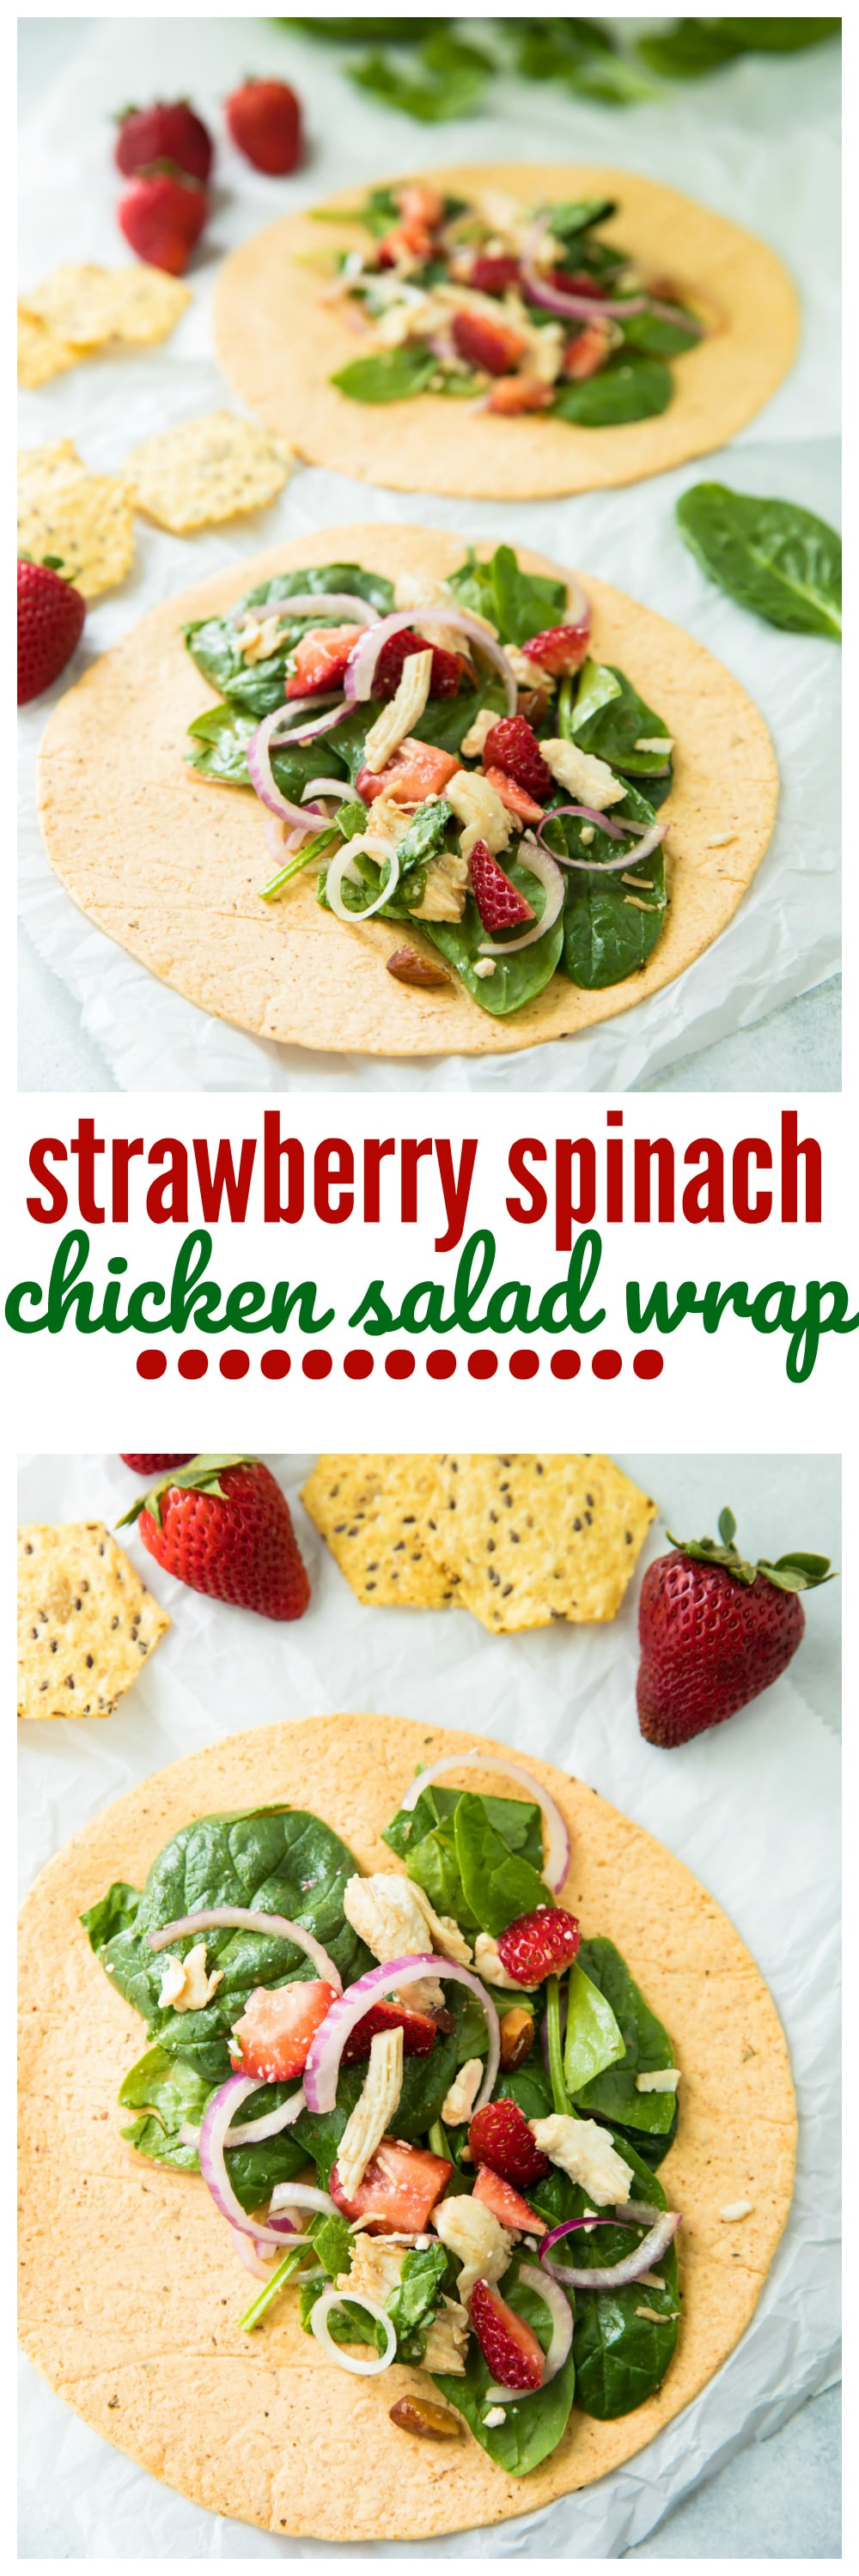 This Strawberry Spinach Chicken Salad Wrap is simple to make and so perfect for lunch! Fresh spring greens, juicy strawberries, crunchy almonds, chicken, and feta cheese come together with amazing flavor.